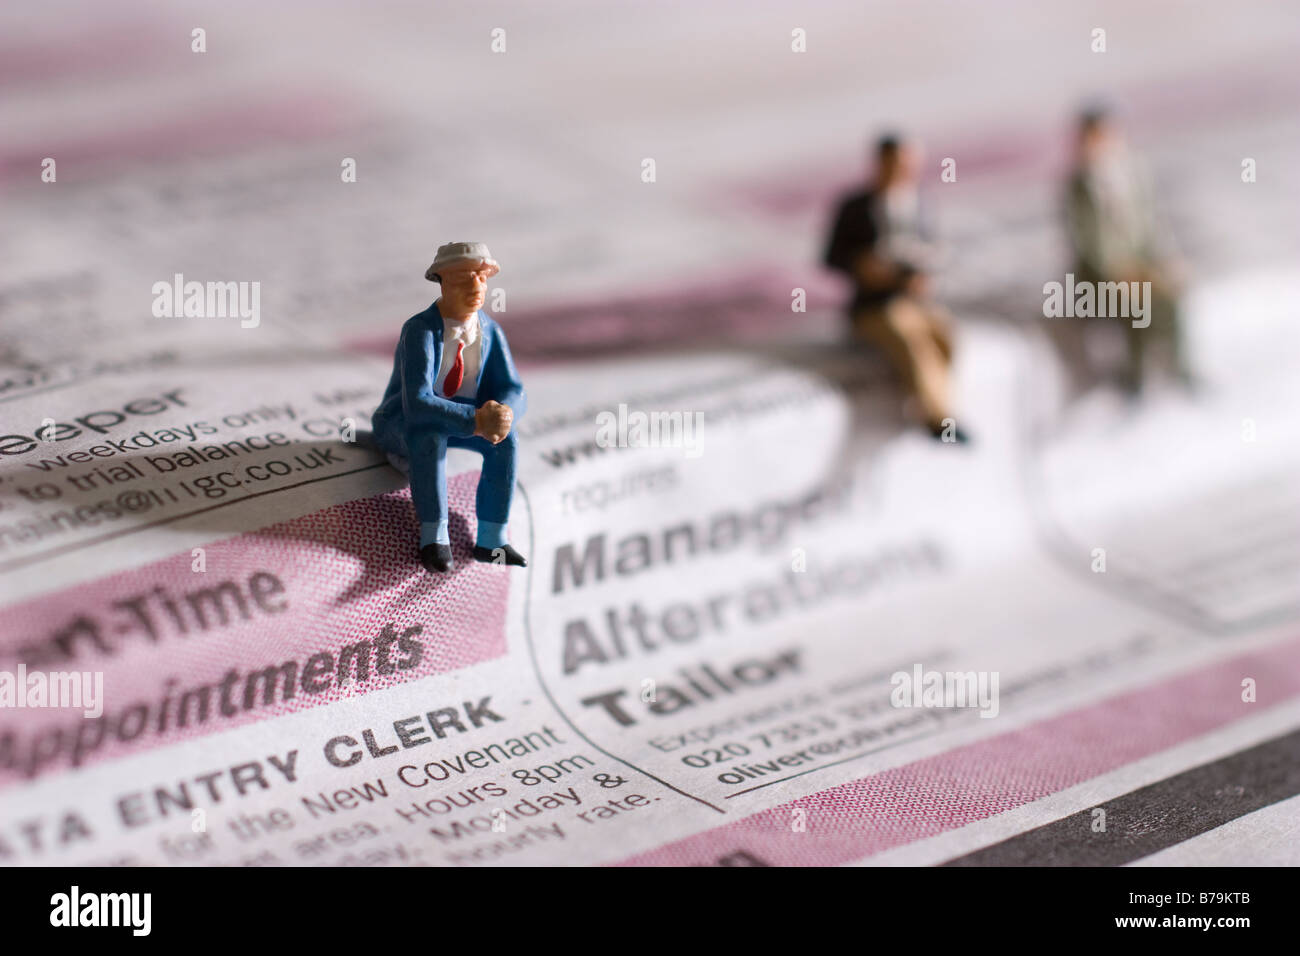 models of workers on situation vacant column of newspaper - Stock Image